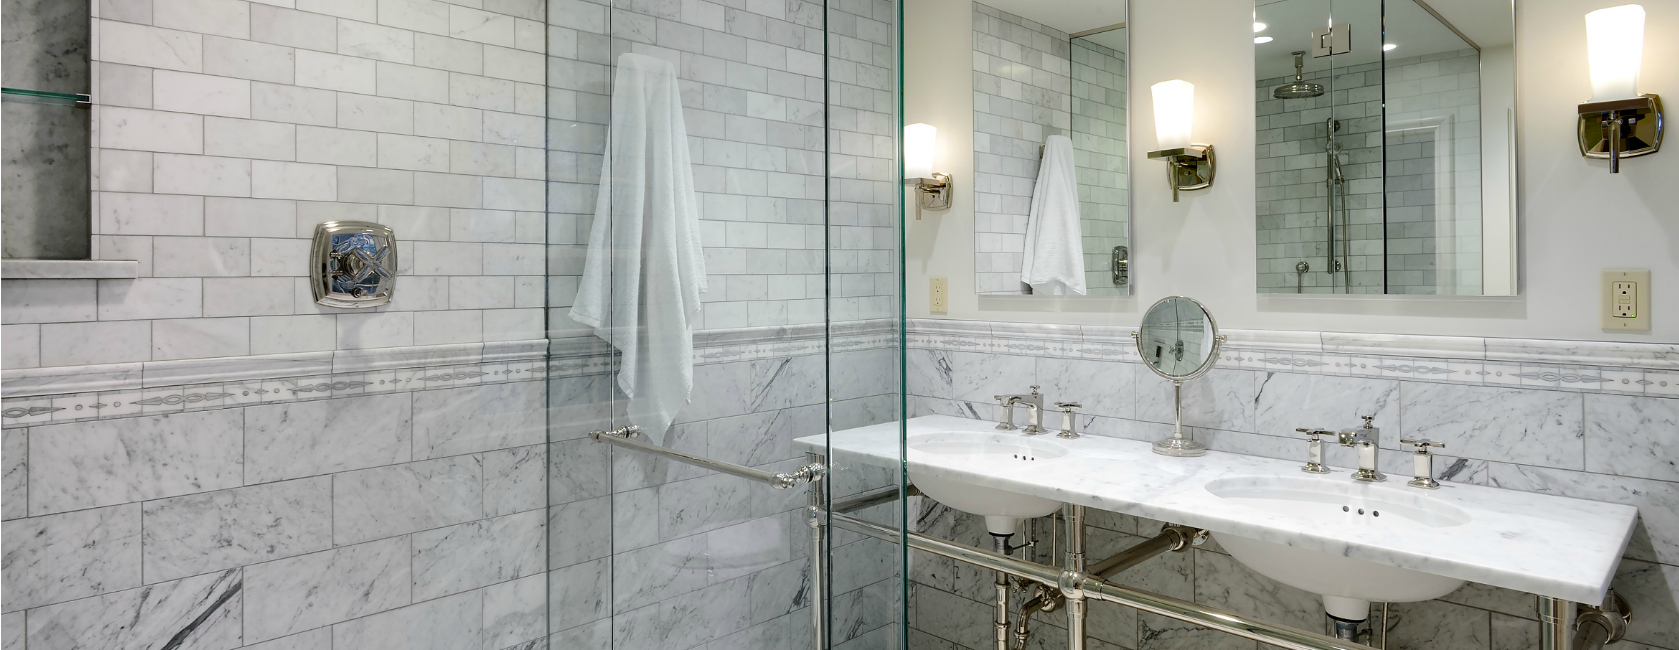 Premium Construction | Hilton Head Bathroom Remodeling